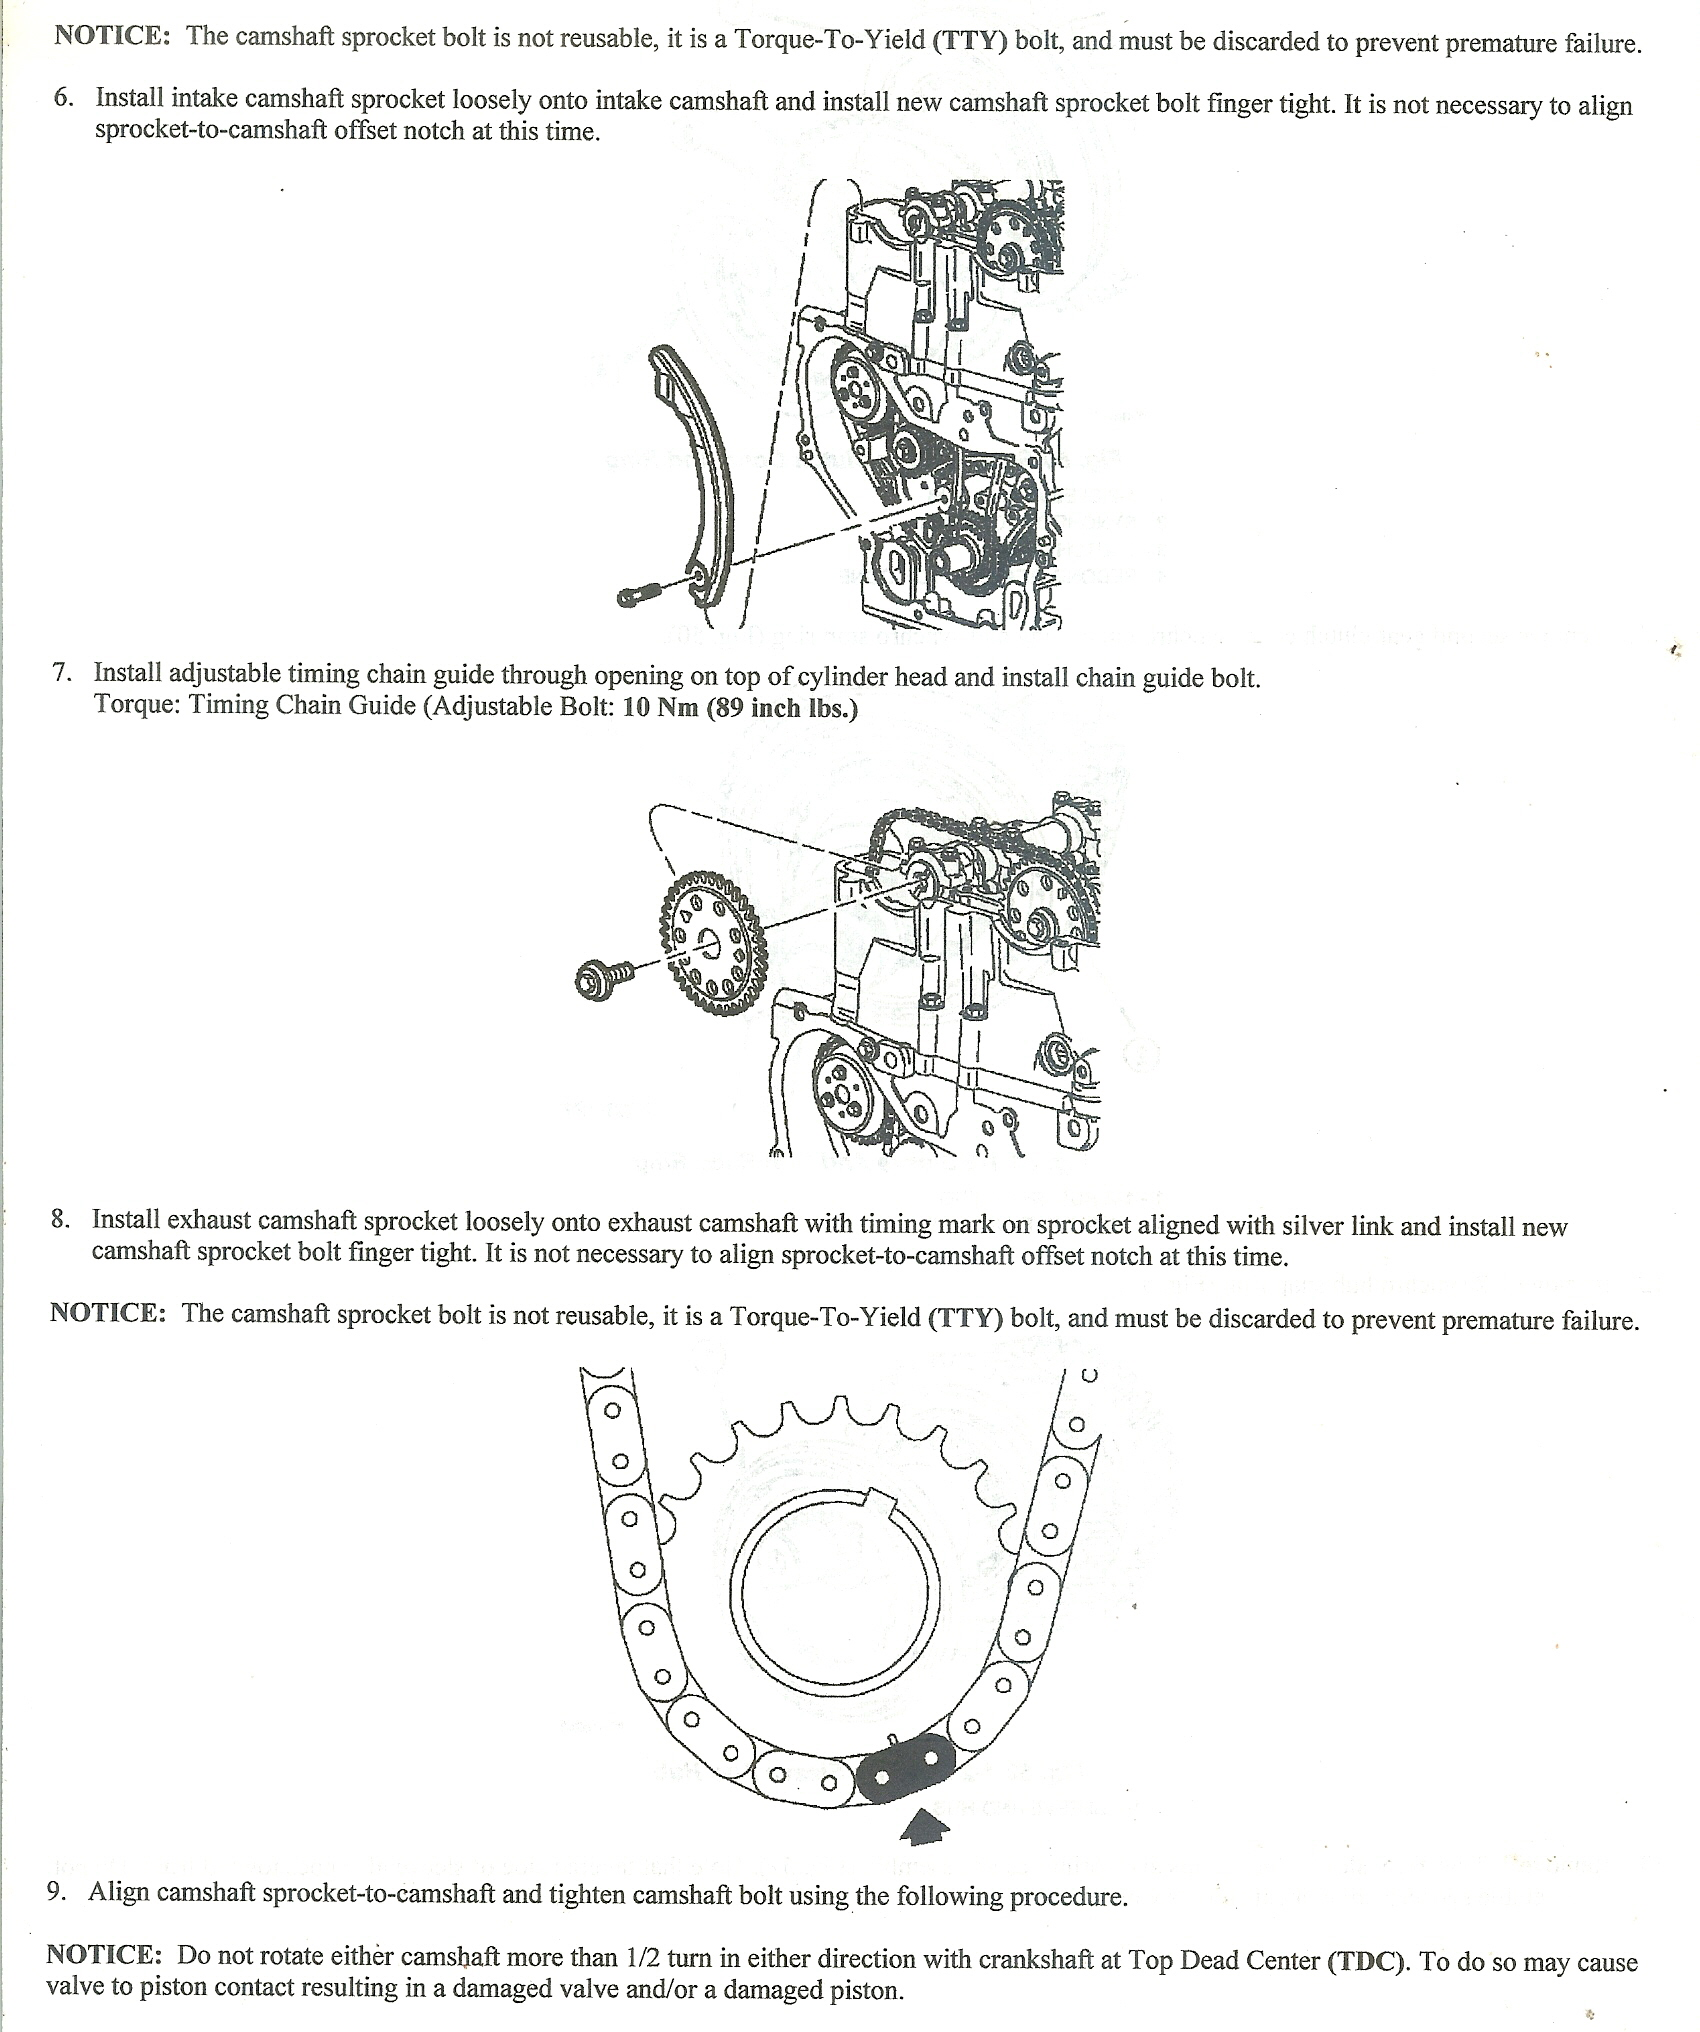 I Put A New Cylinder Head Onto 22 Ecotek Engine My Question Is Amd Diagram Of Piston 660c341a Fbea 499a Abaf 660c341